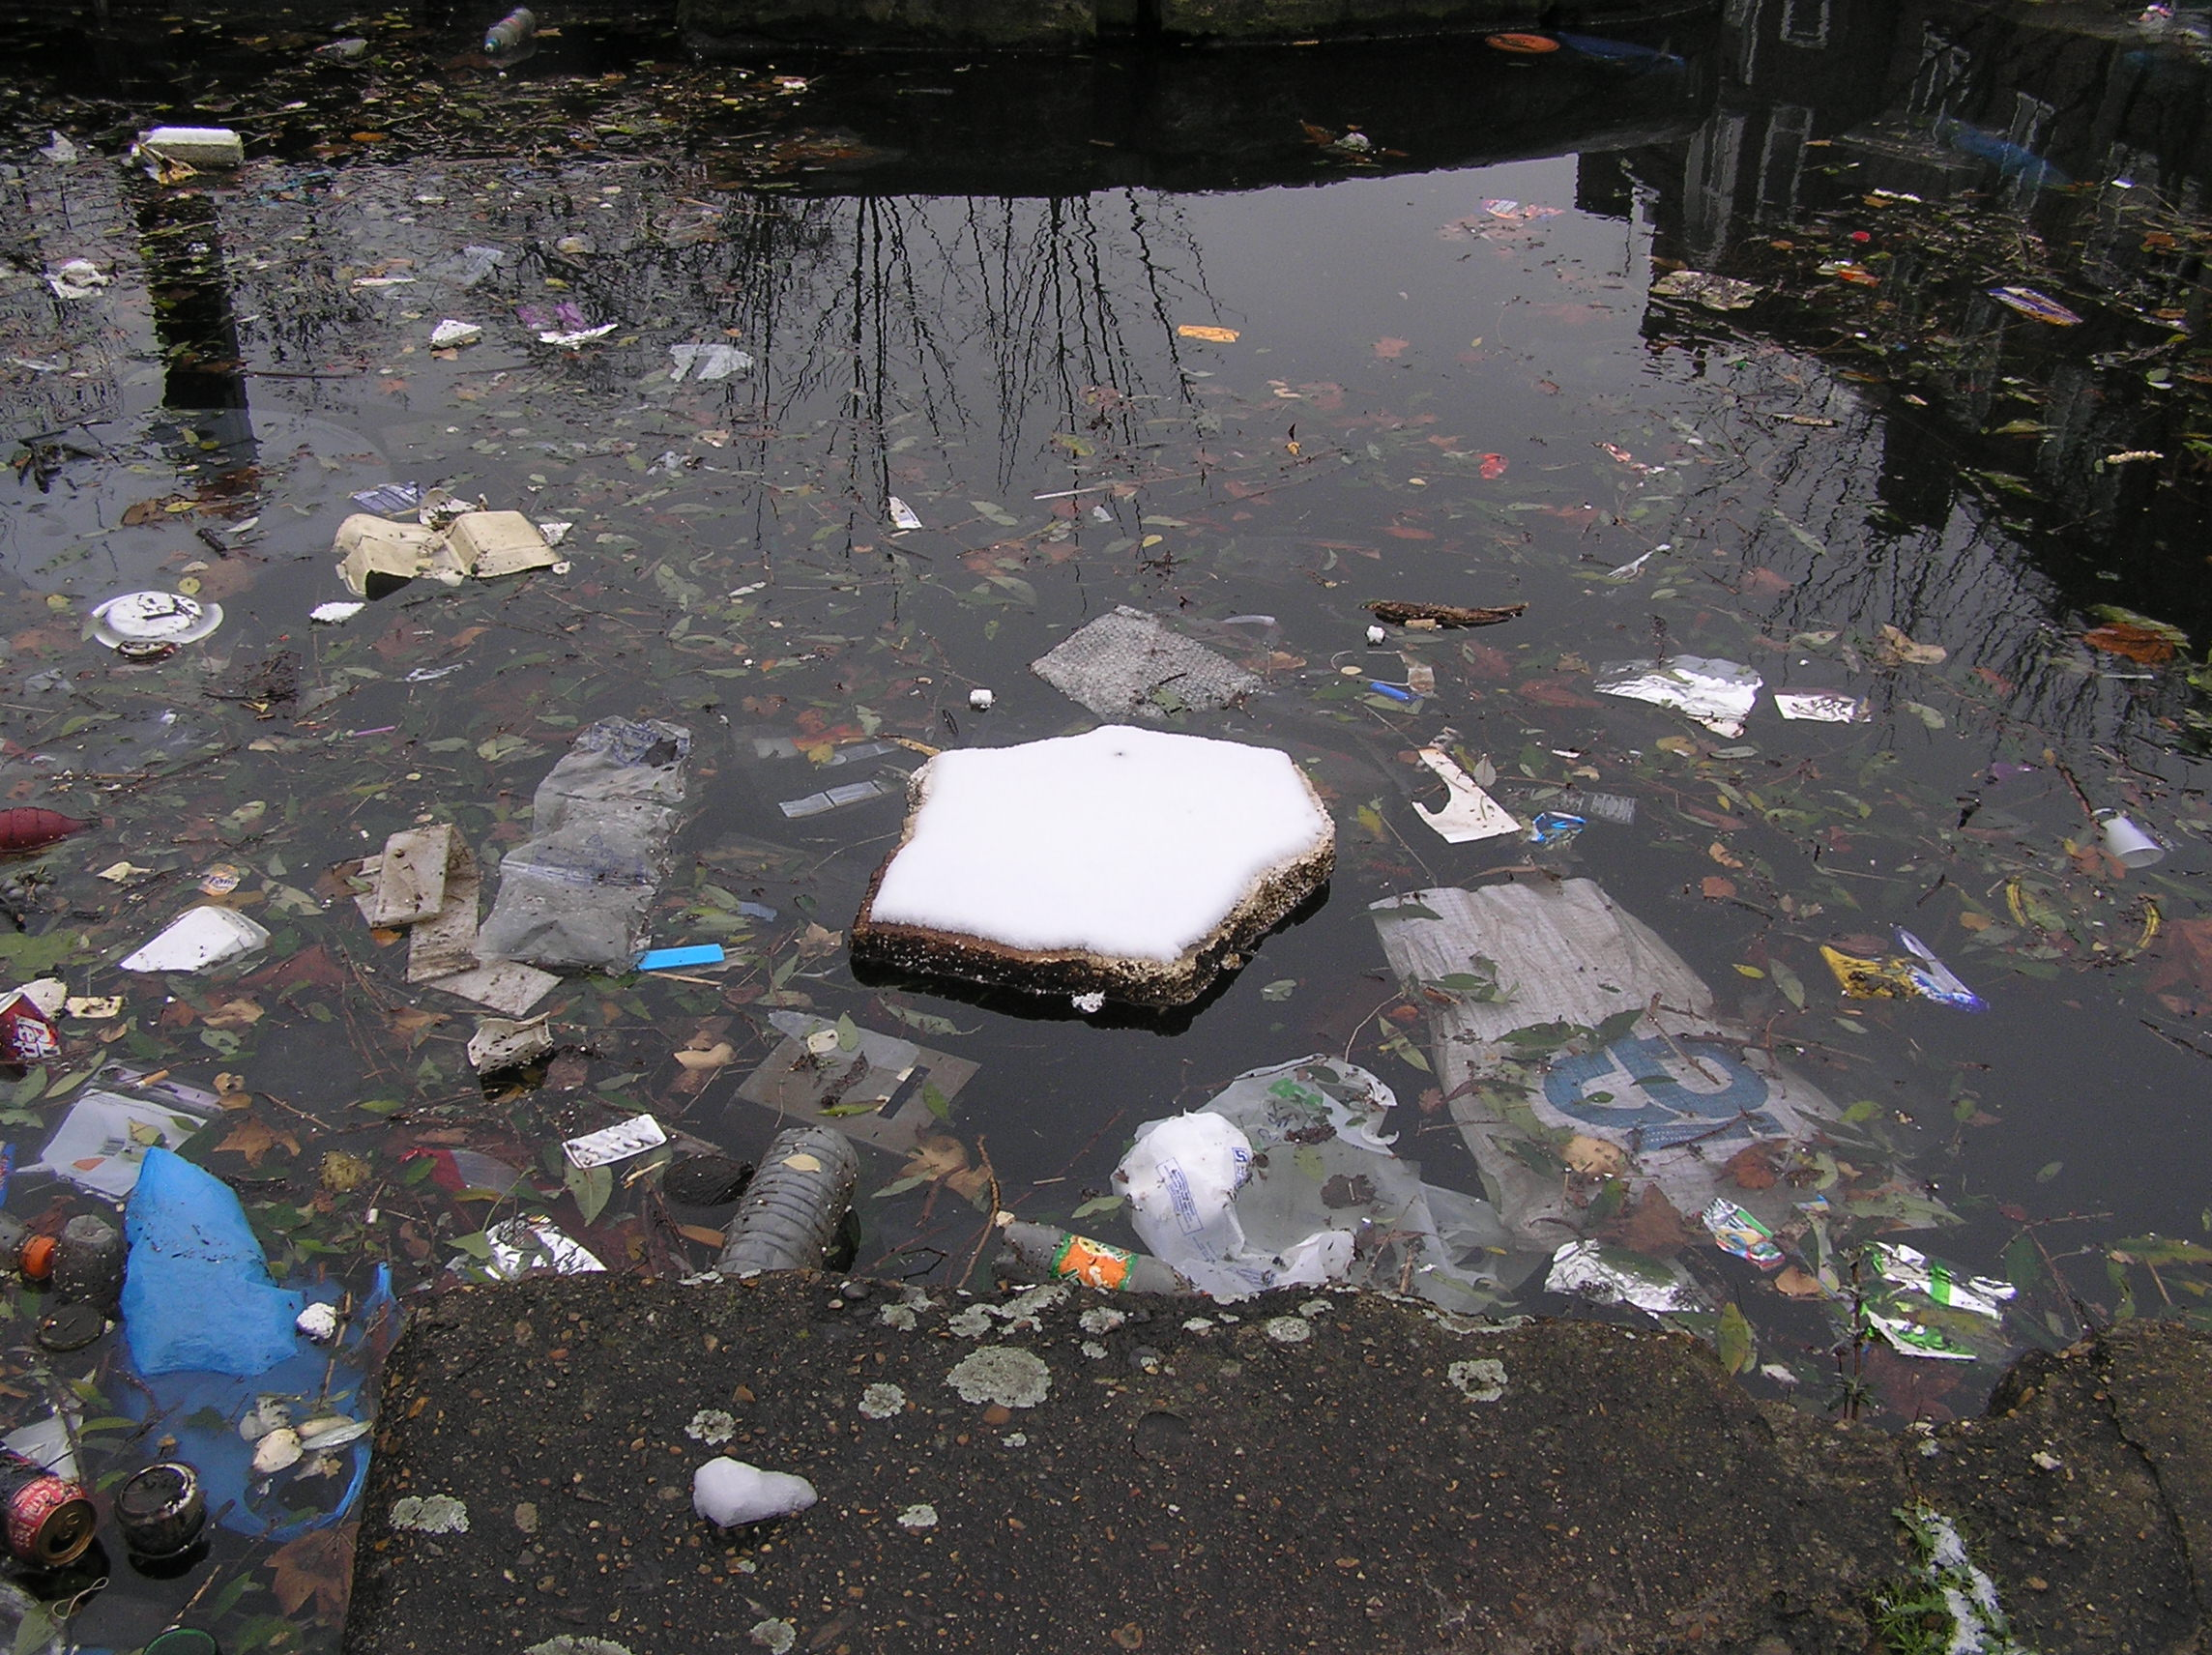 Photograph of white snowy polystyrene floating on filthy littered water by Abi Spendlove